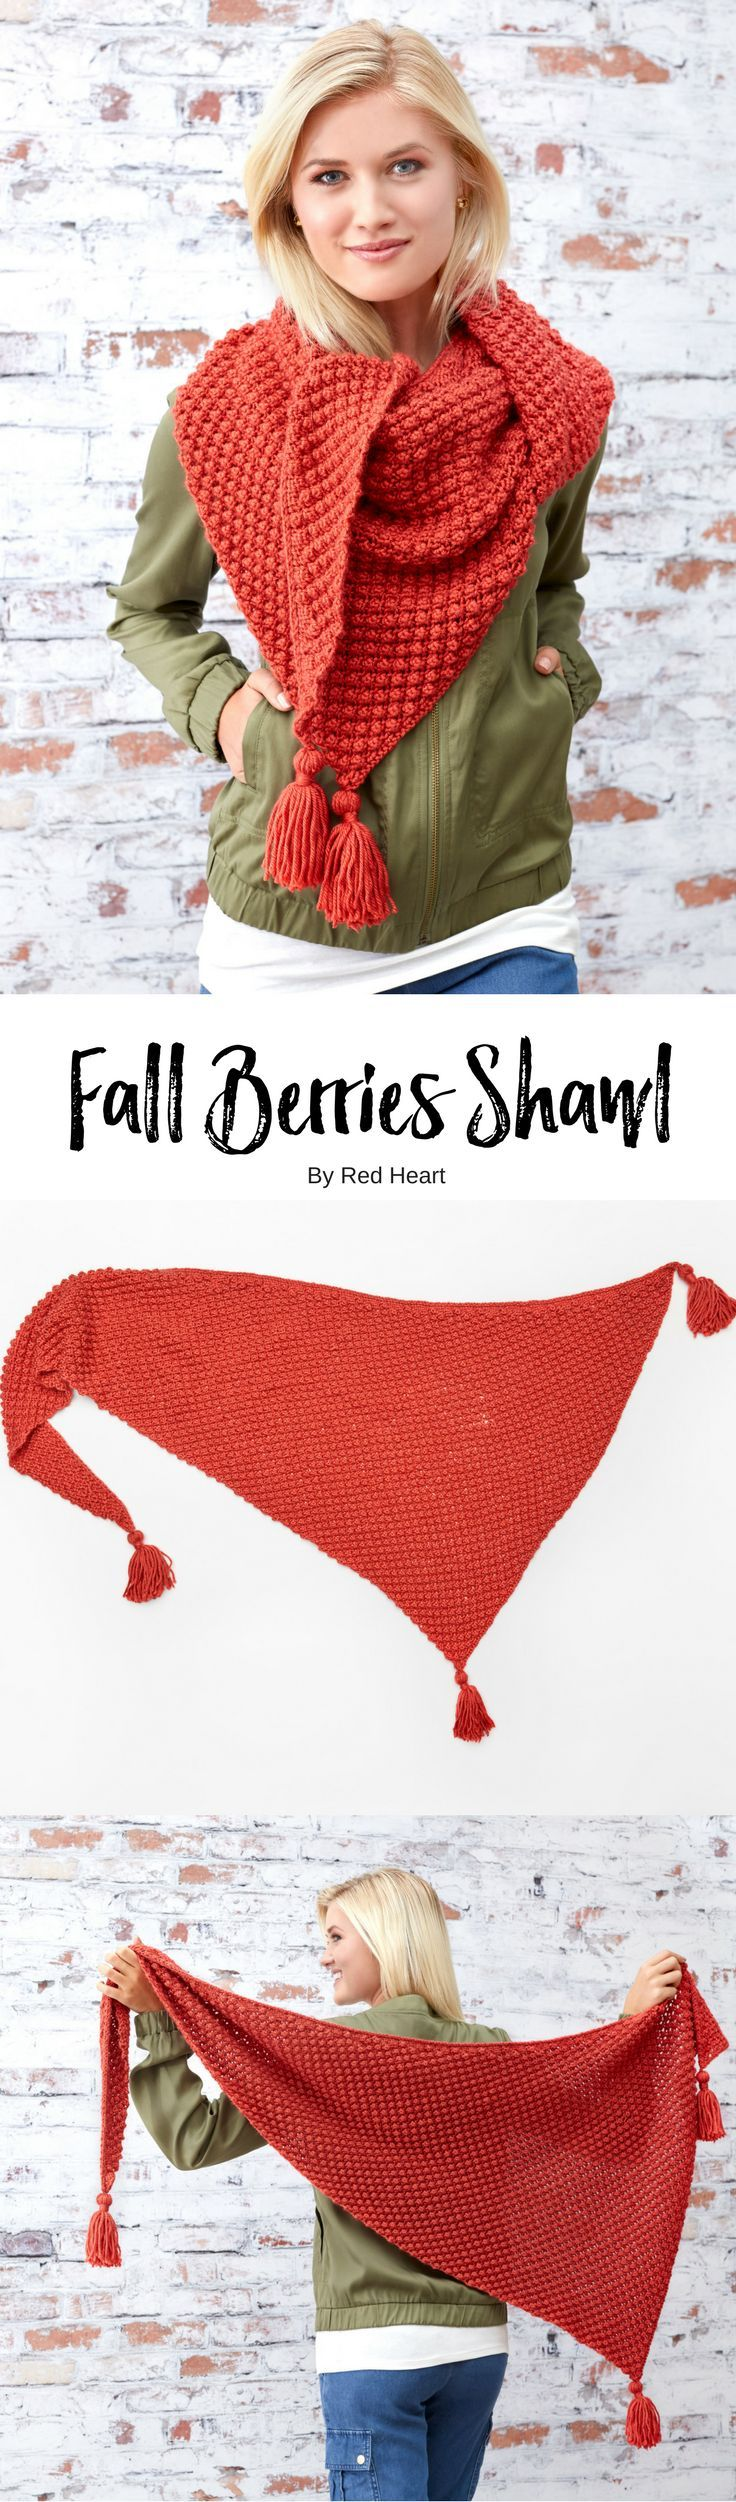 Knit Fall Berries Shawl in Soft. This shawl's textured stitch is perfect for keeping the chill in the air out. Wear it all autumn long, and wrap it close as the winter's frost sets in, it's sure to become a favorite.